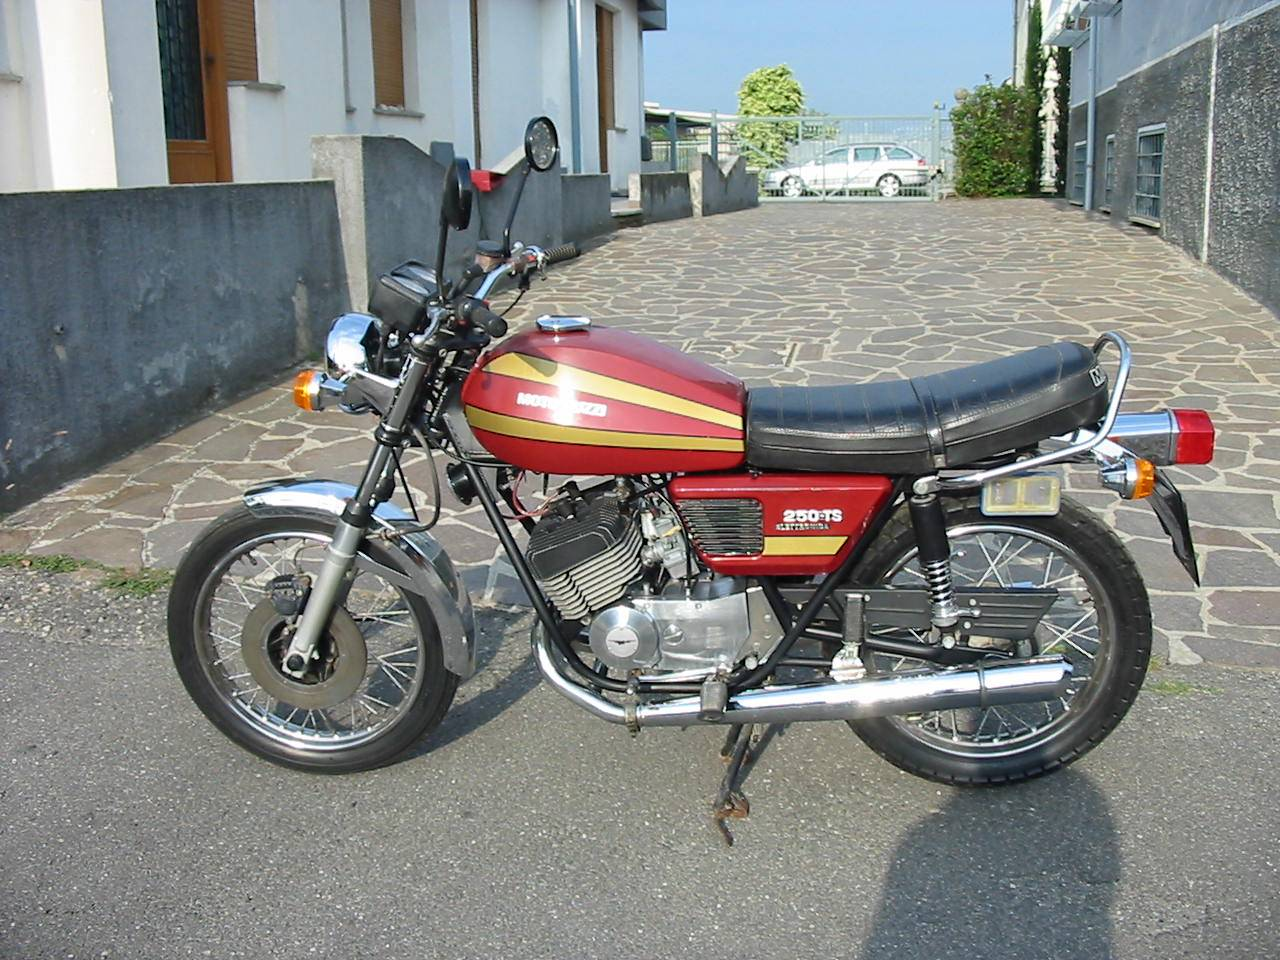 Moto guzzi 250 photo - 7